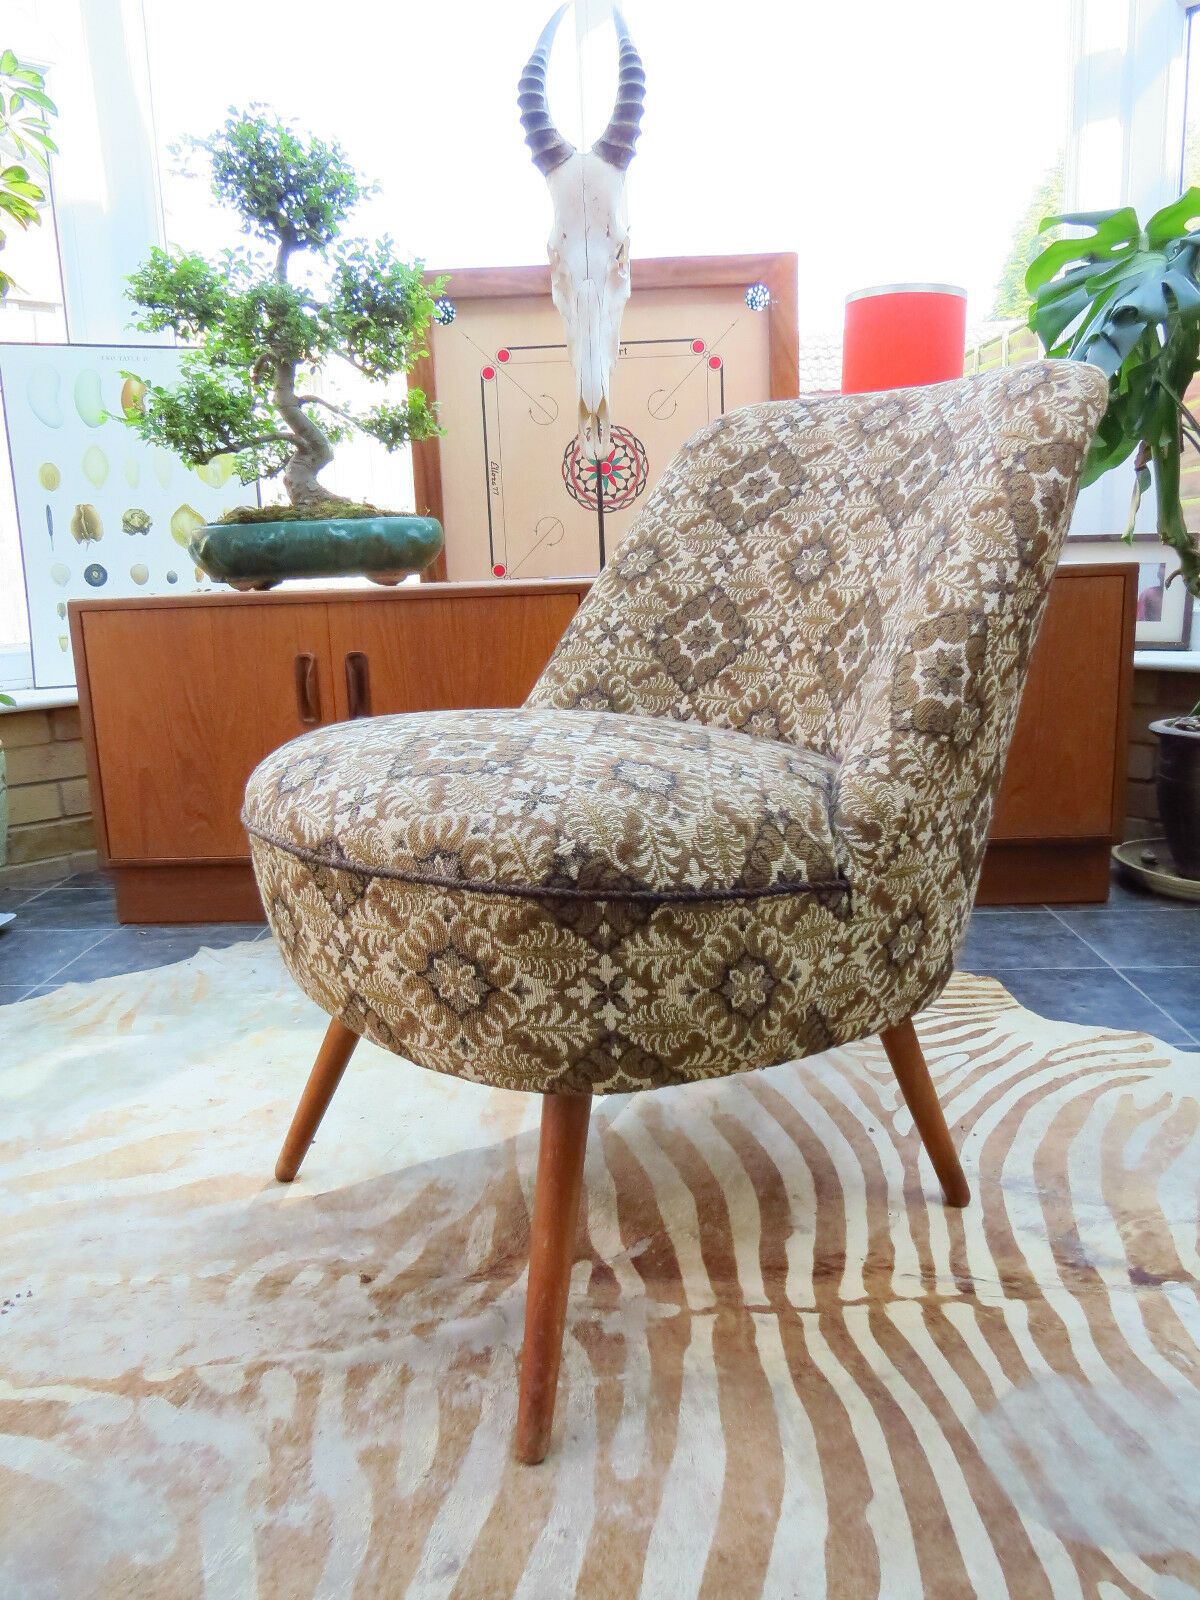 SINGLE 1960s VINTAGE EAST GERMAN COCKTAIL CHAIR (A16/41) ORIGINAL CONDITION